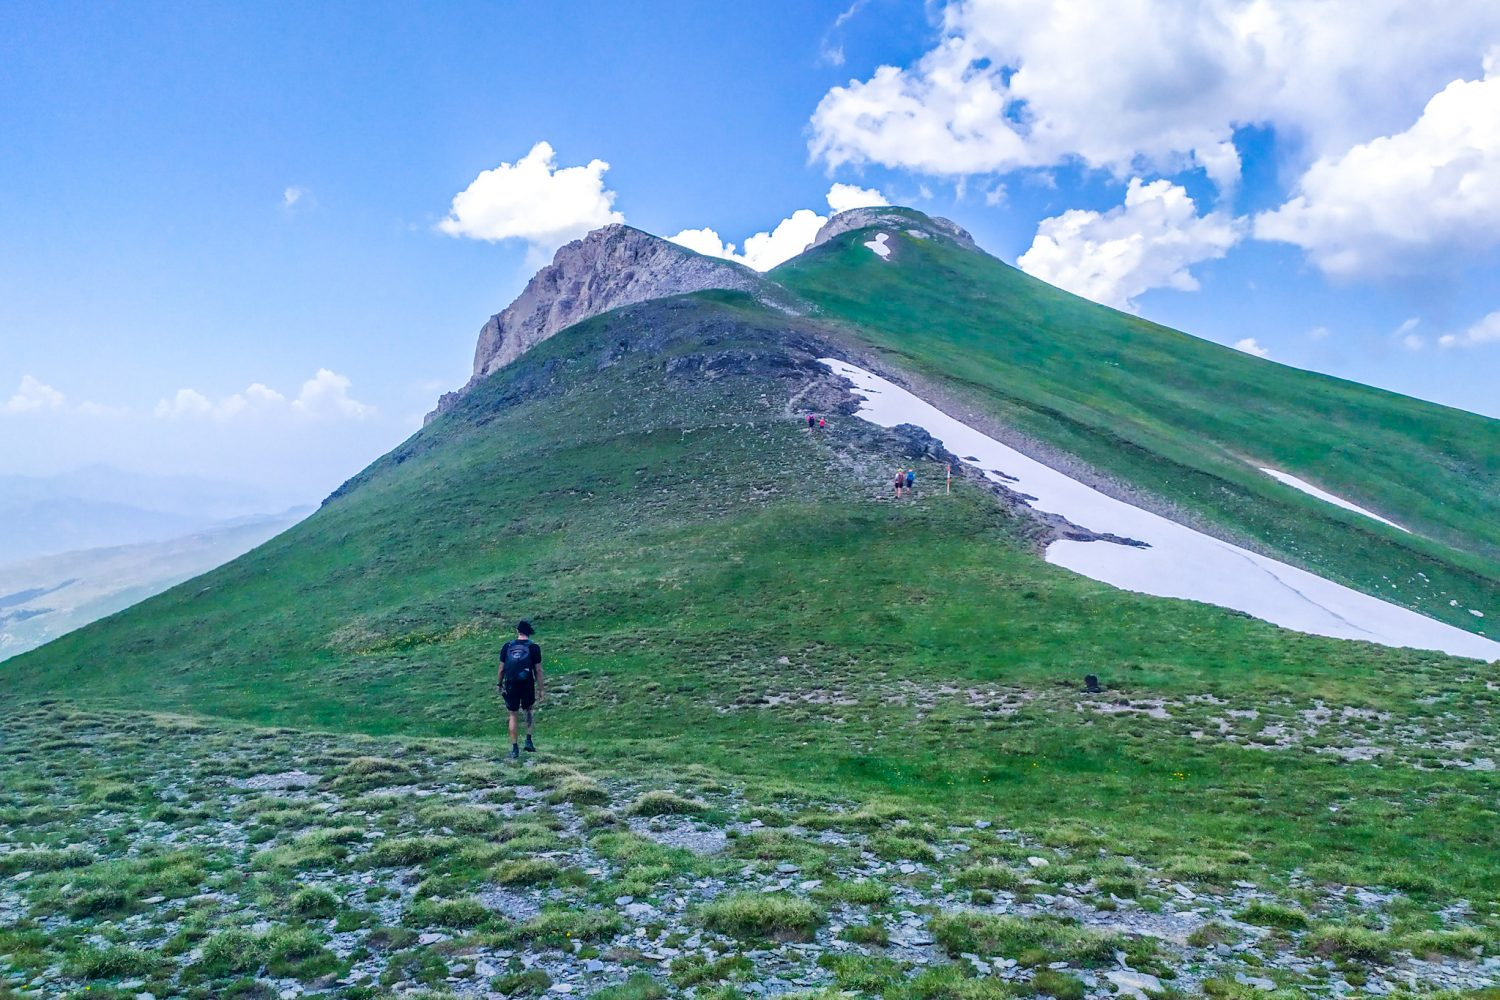 Summit of Korab Mountain